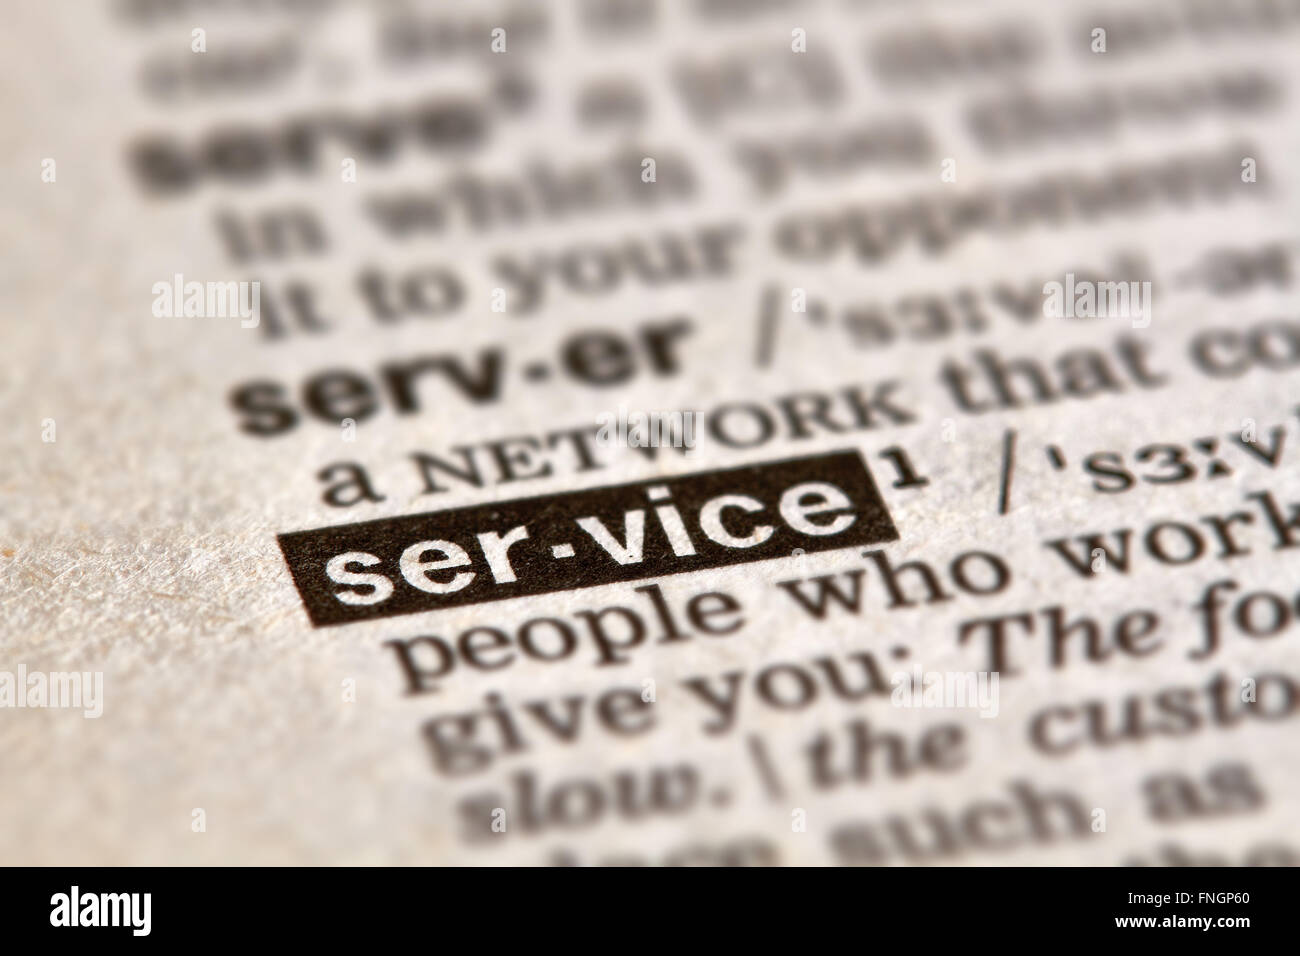 Service Word Definition Text in Dictionary Page - Stock Image